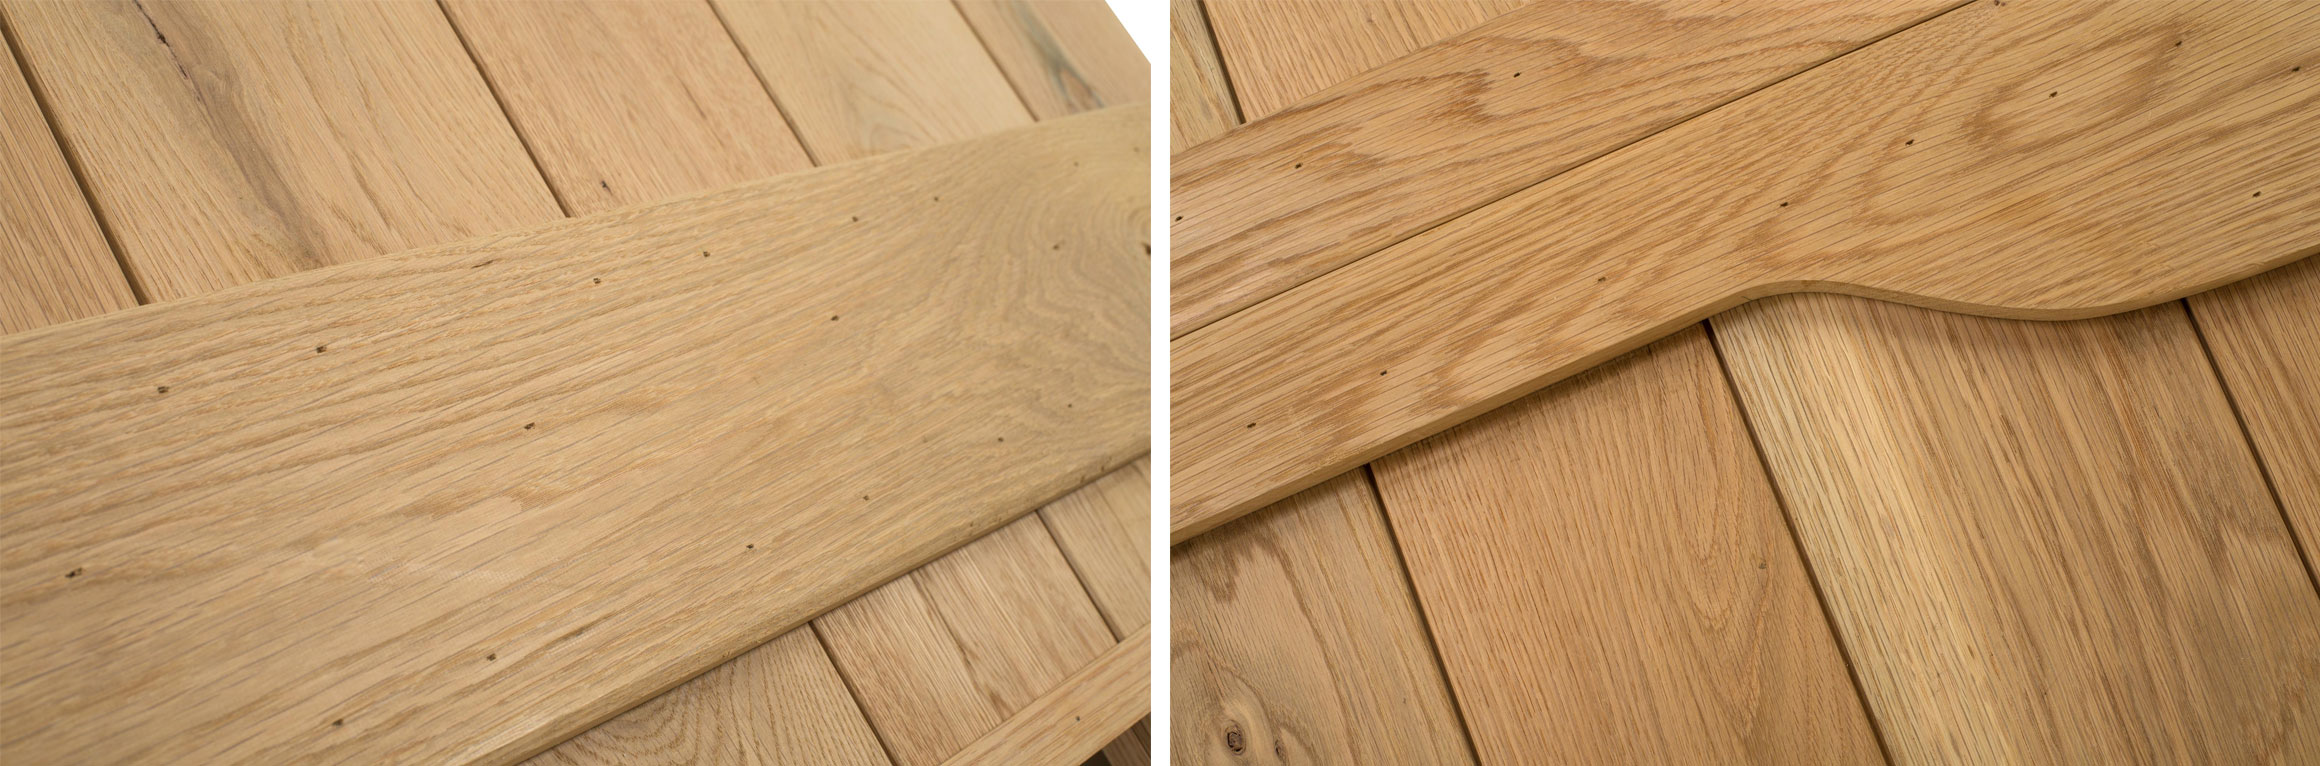 An example of a v-groove Oak door profile.